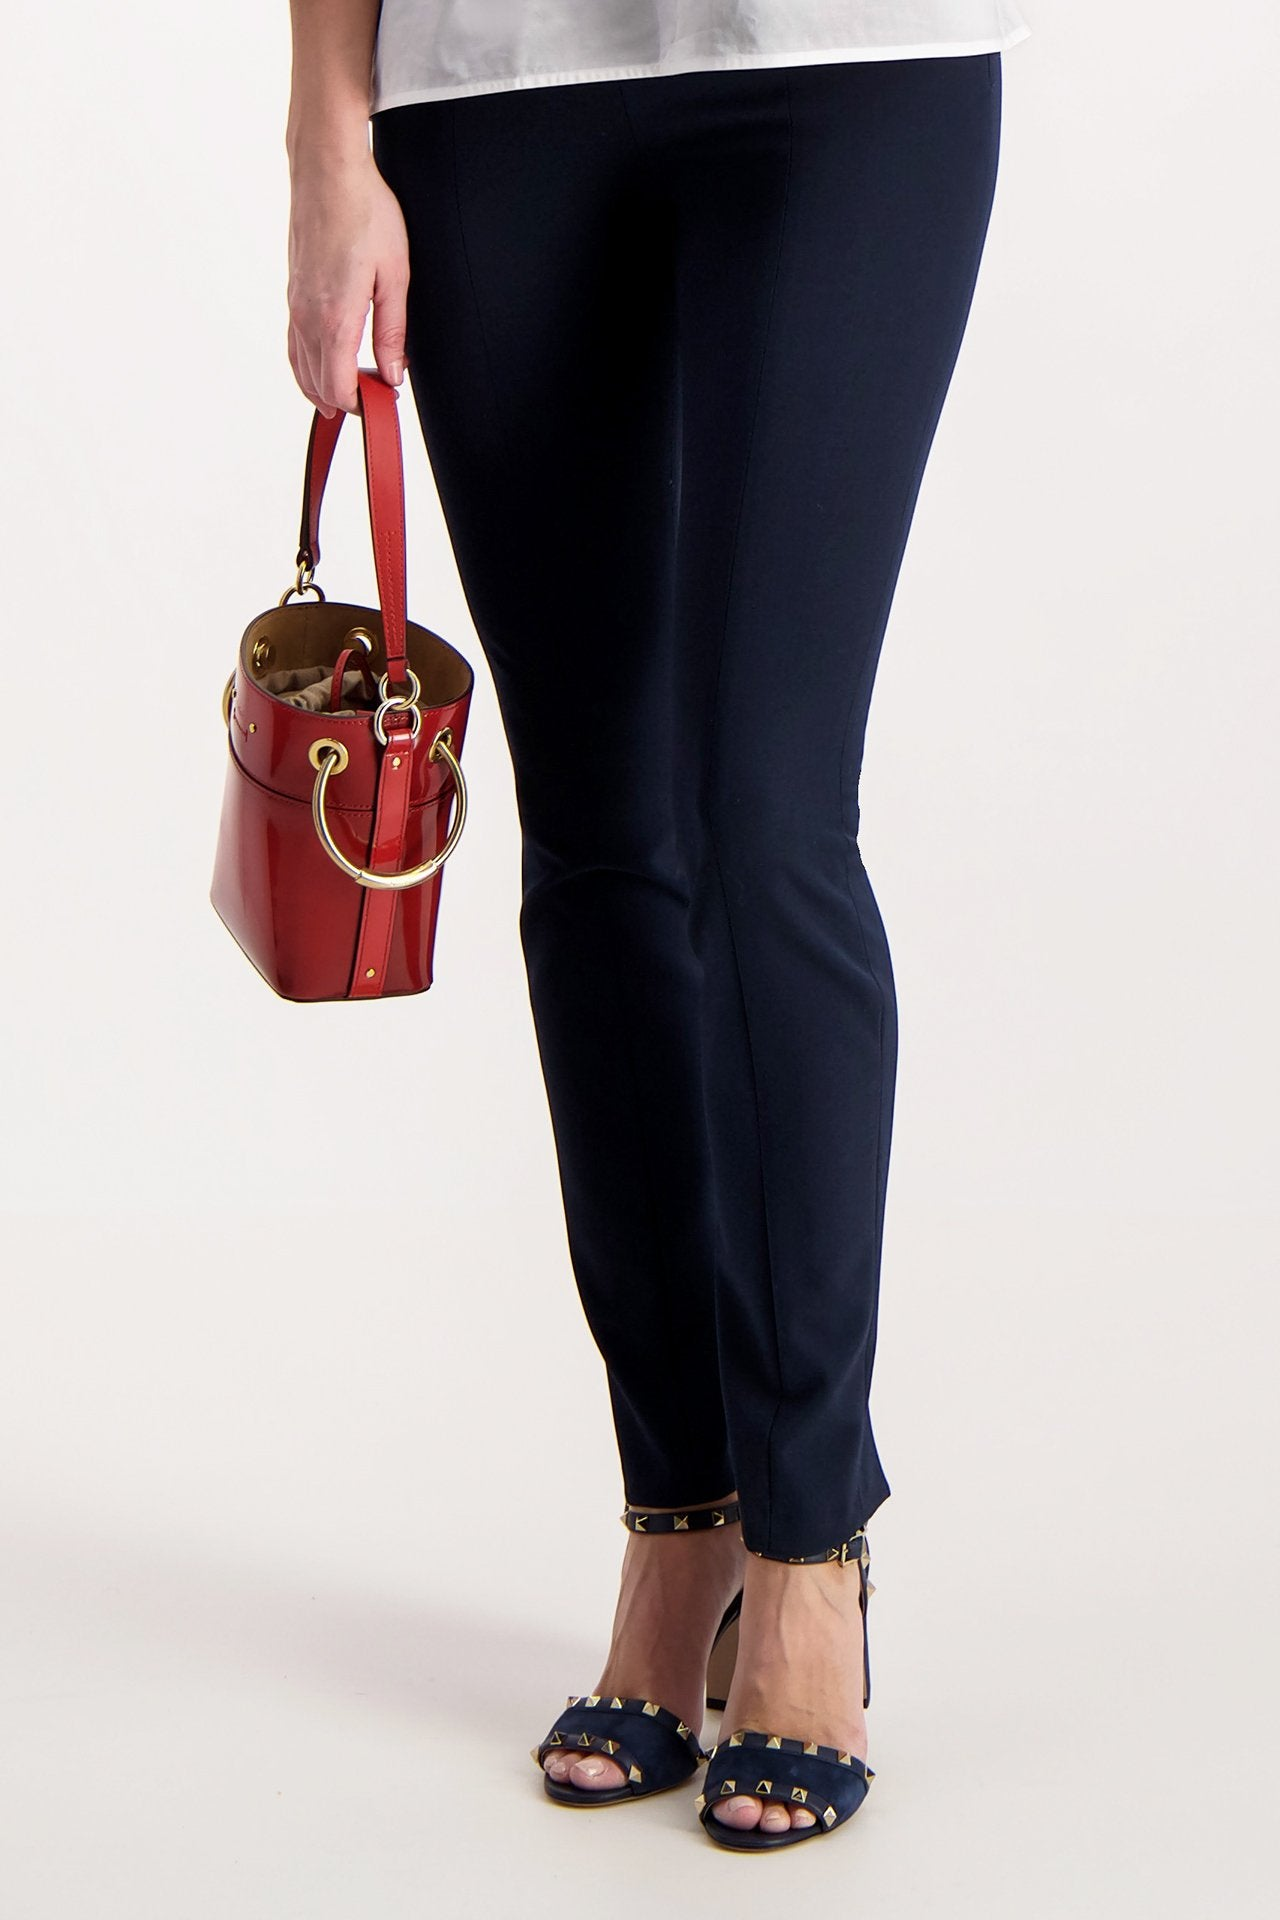 Model Image of Chloé Roy Glossy Bucket Bag Earthy Red